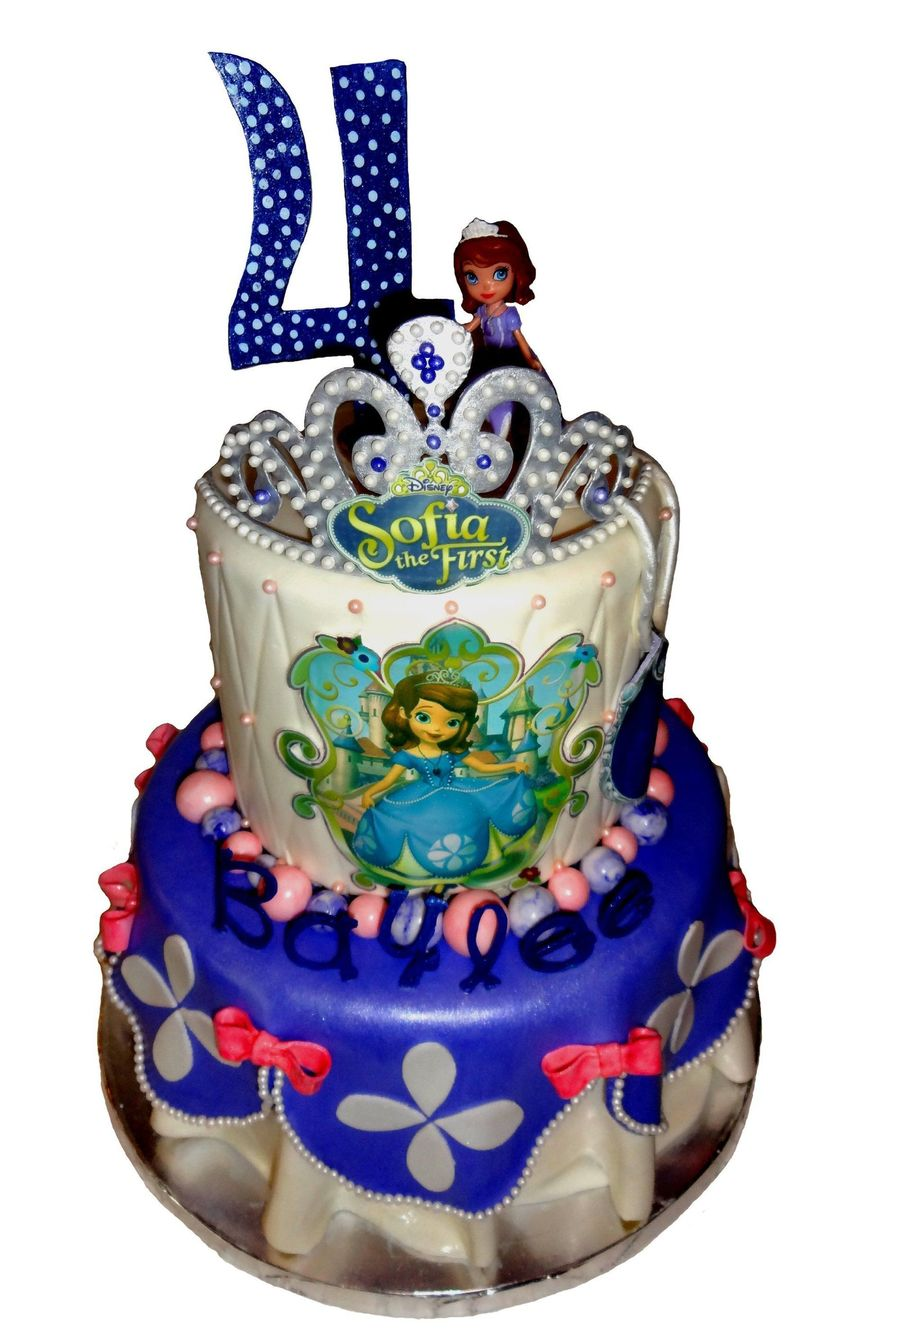 Princess Sofia The First 4th Birthday Cake Cakecentral